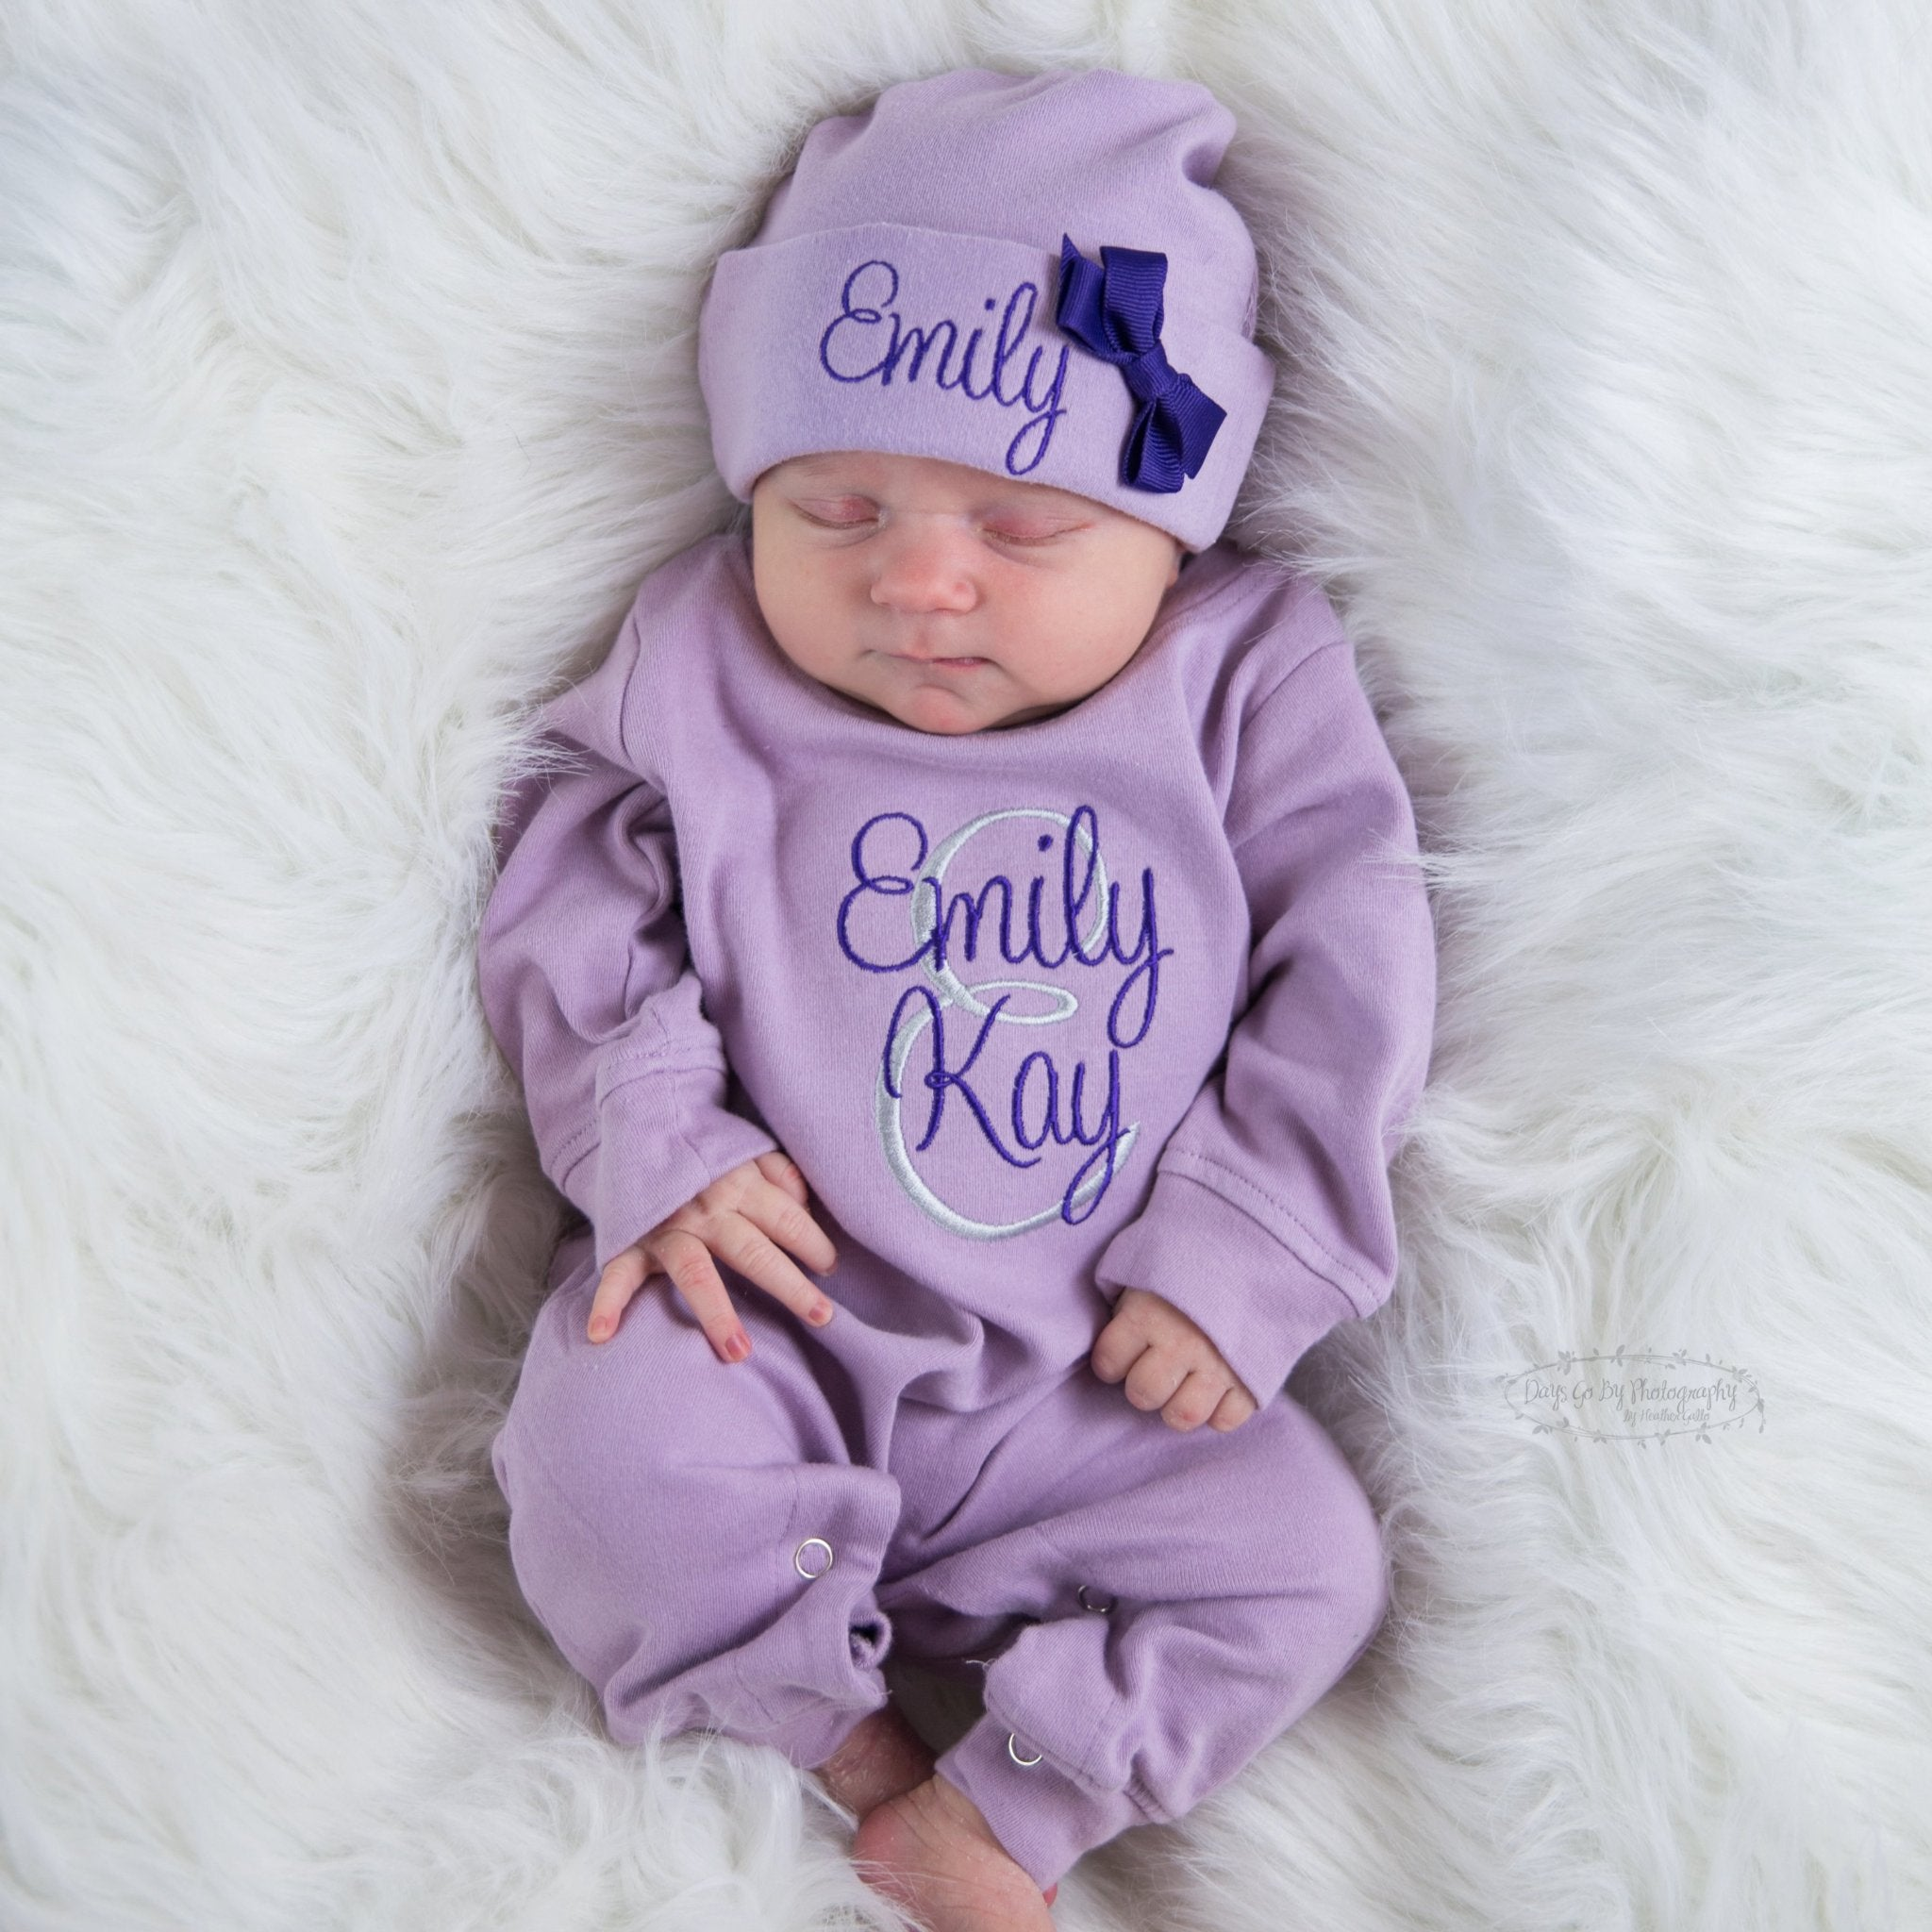 93d54cca0943 Personalized Purple Baby Girl Romper and Hat Coming Home Outfit ...